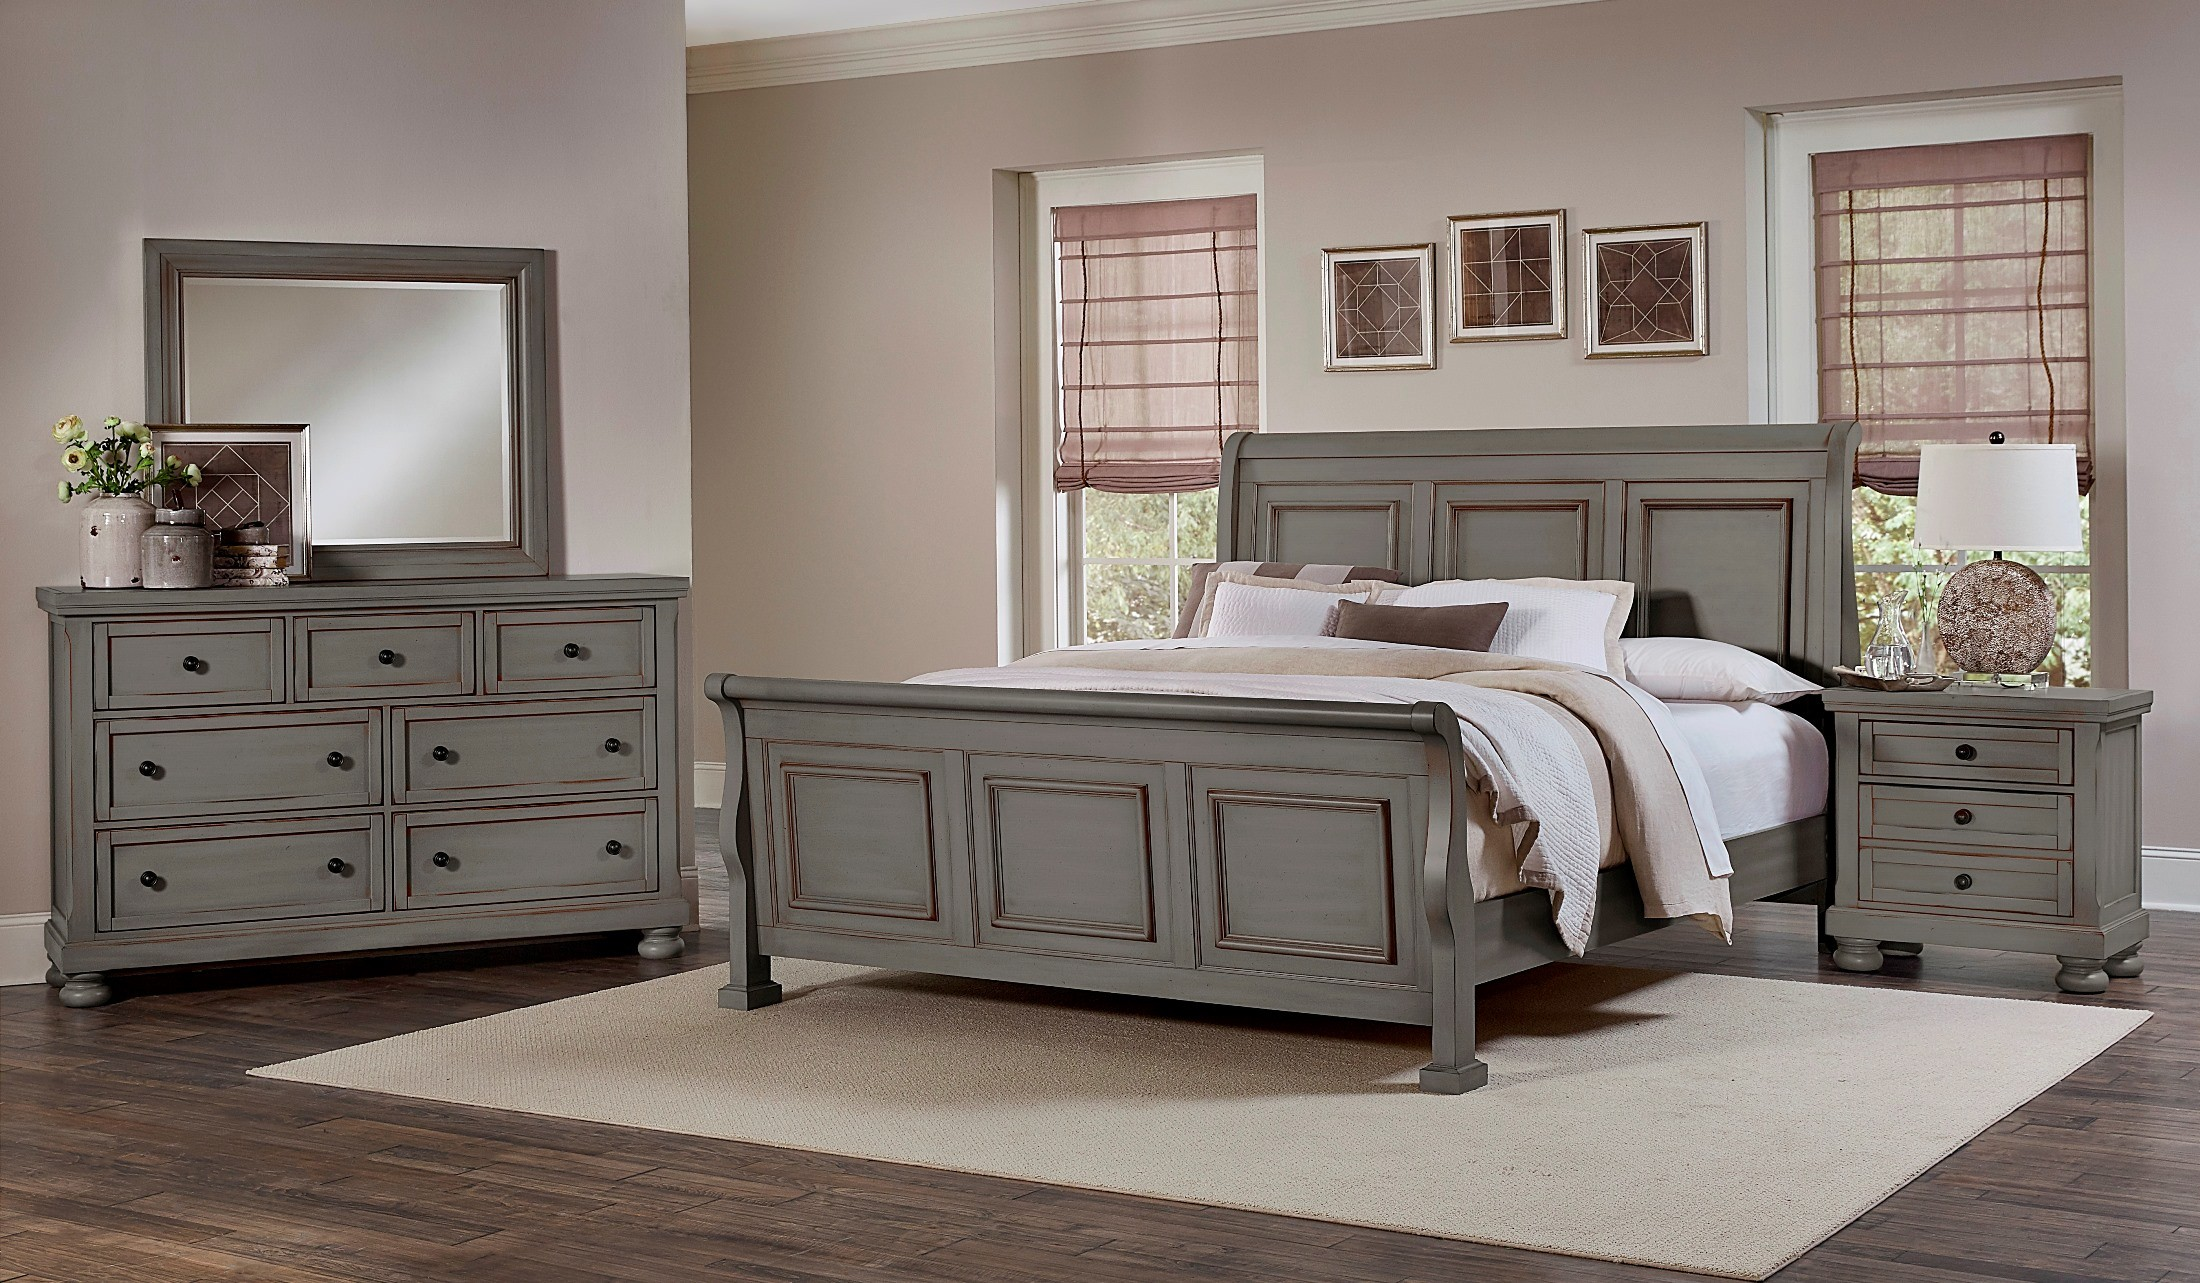 Reflections Antique Pewter Sleigh Bedroom Set From Virginia House Coleman Furniture